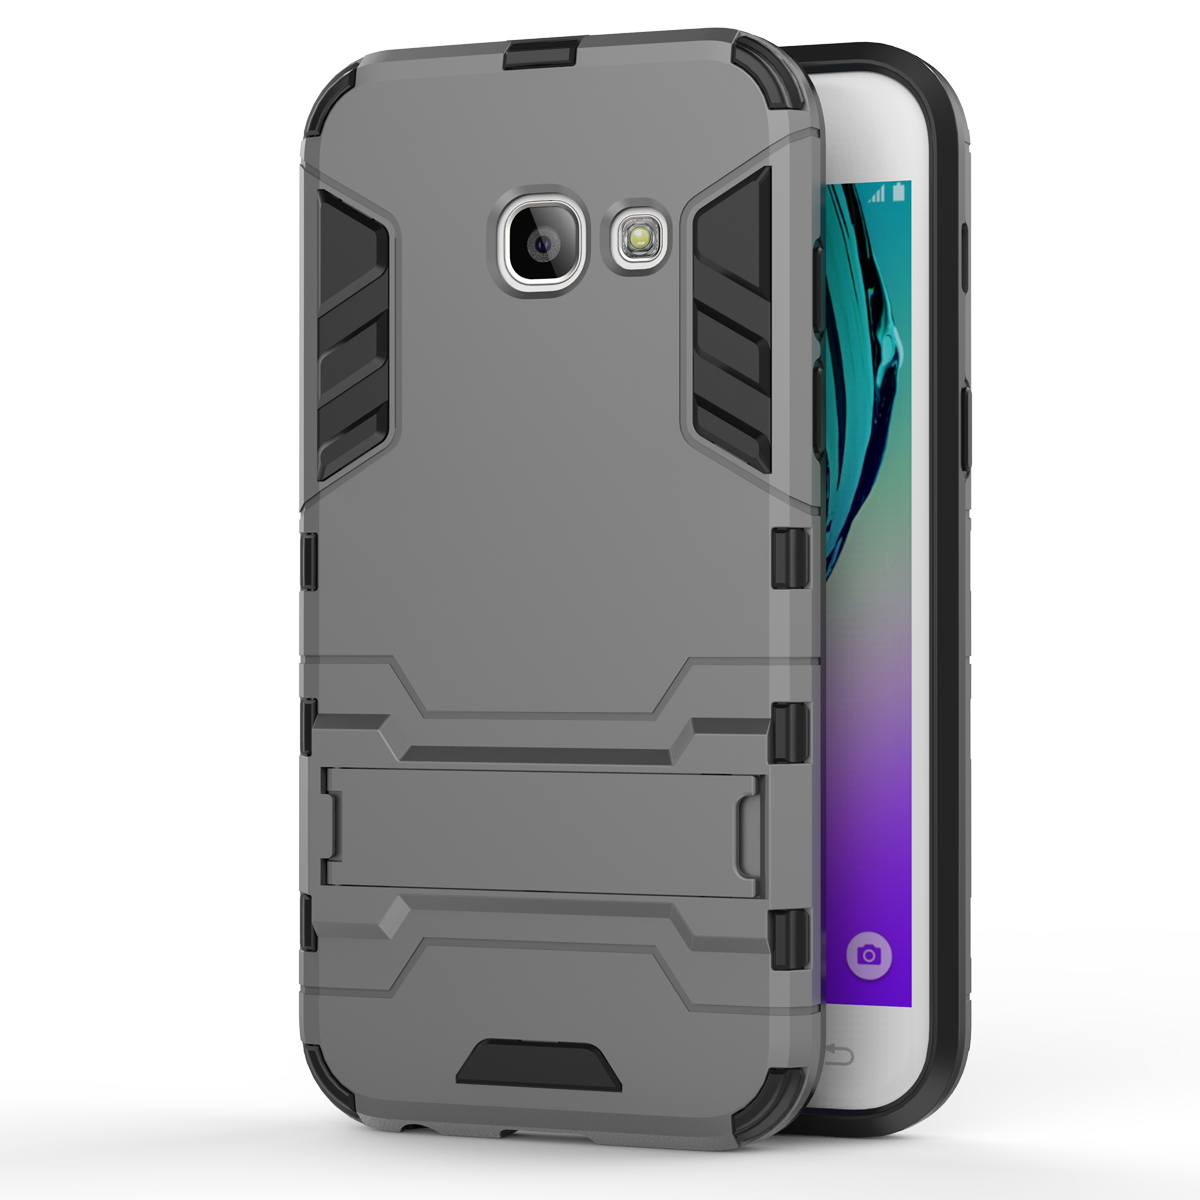 Kickstand Protective Cover Case For Samsung Galaxy J3 (2017) / Emerge  - Gray